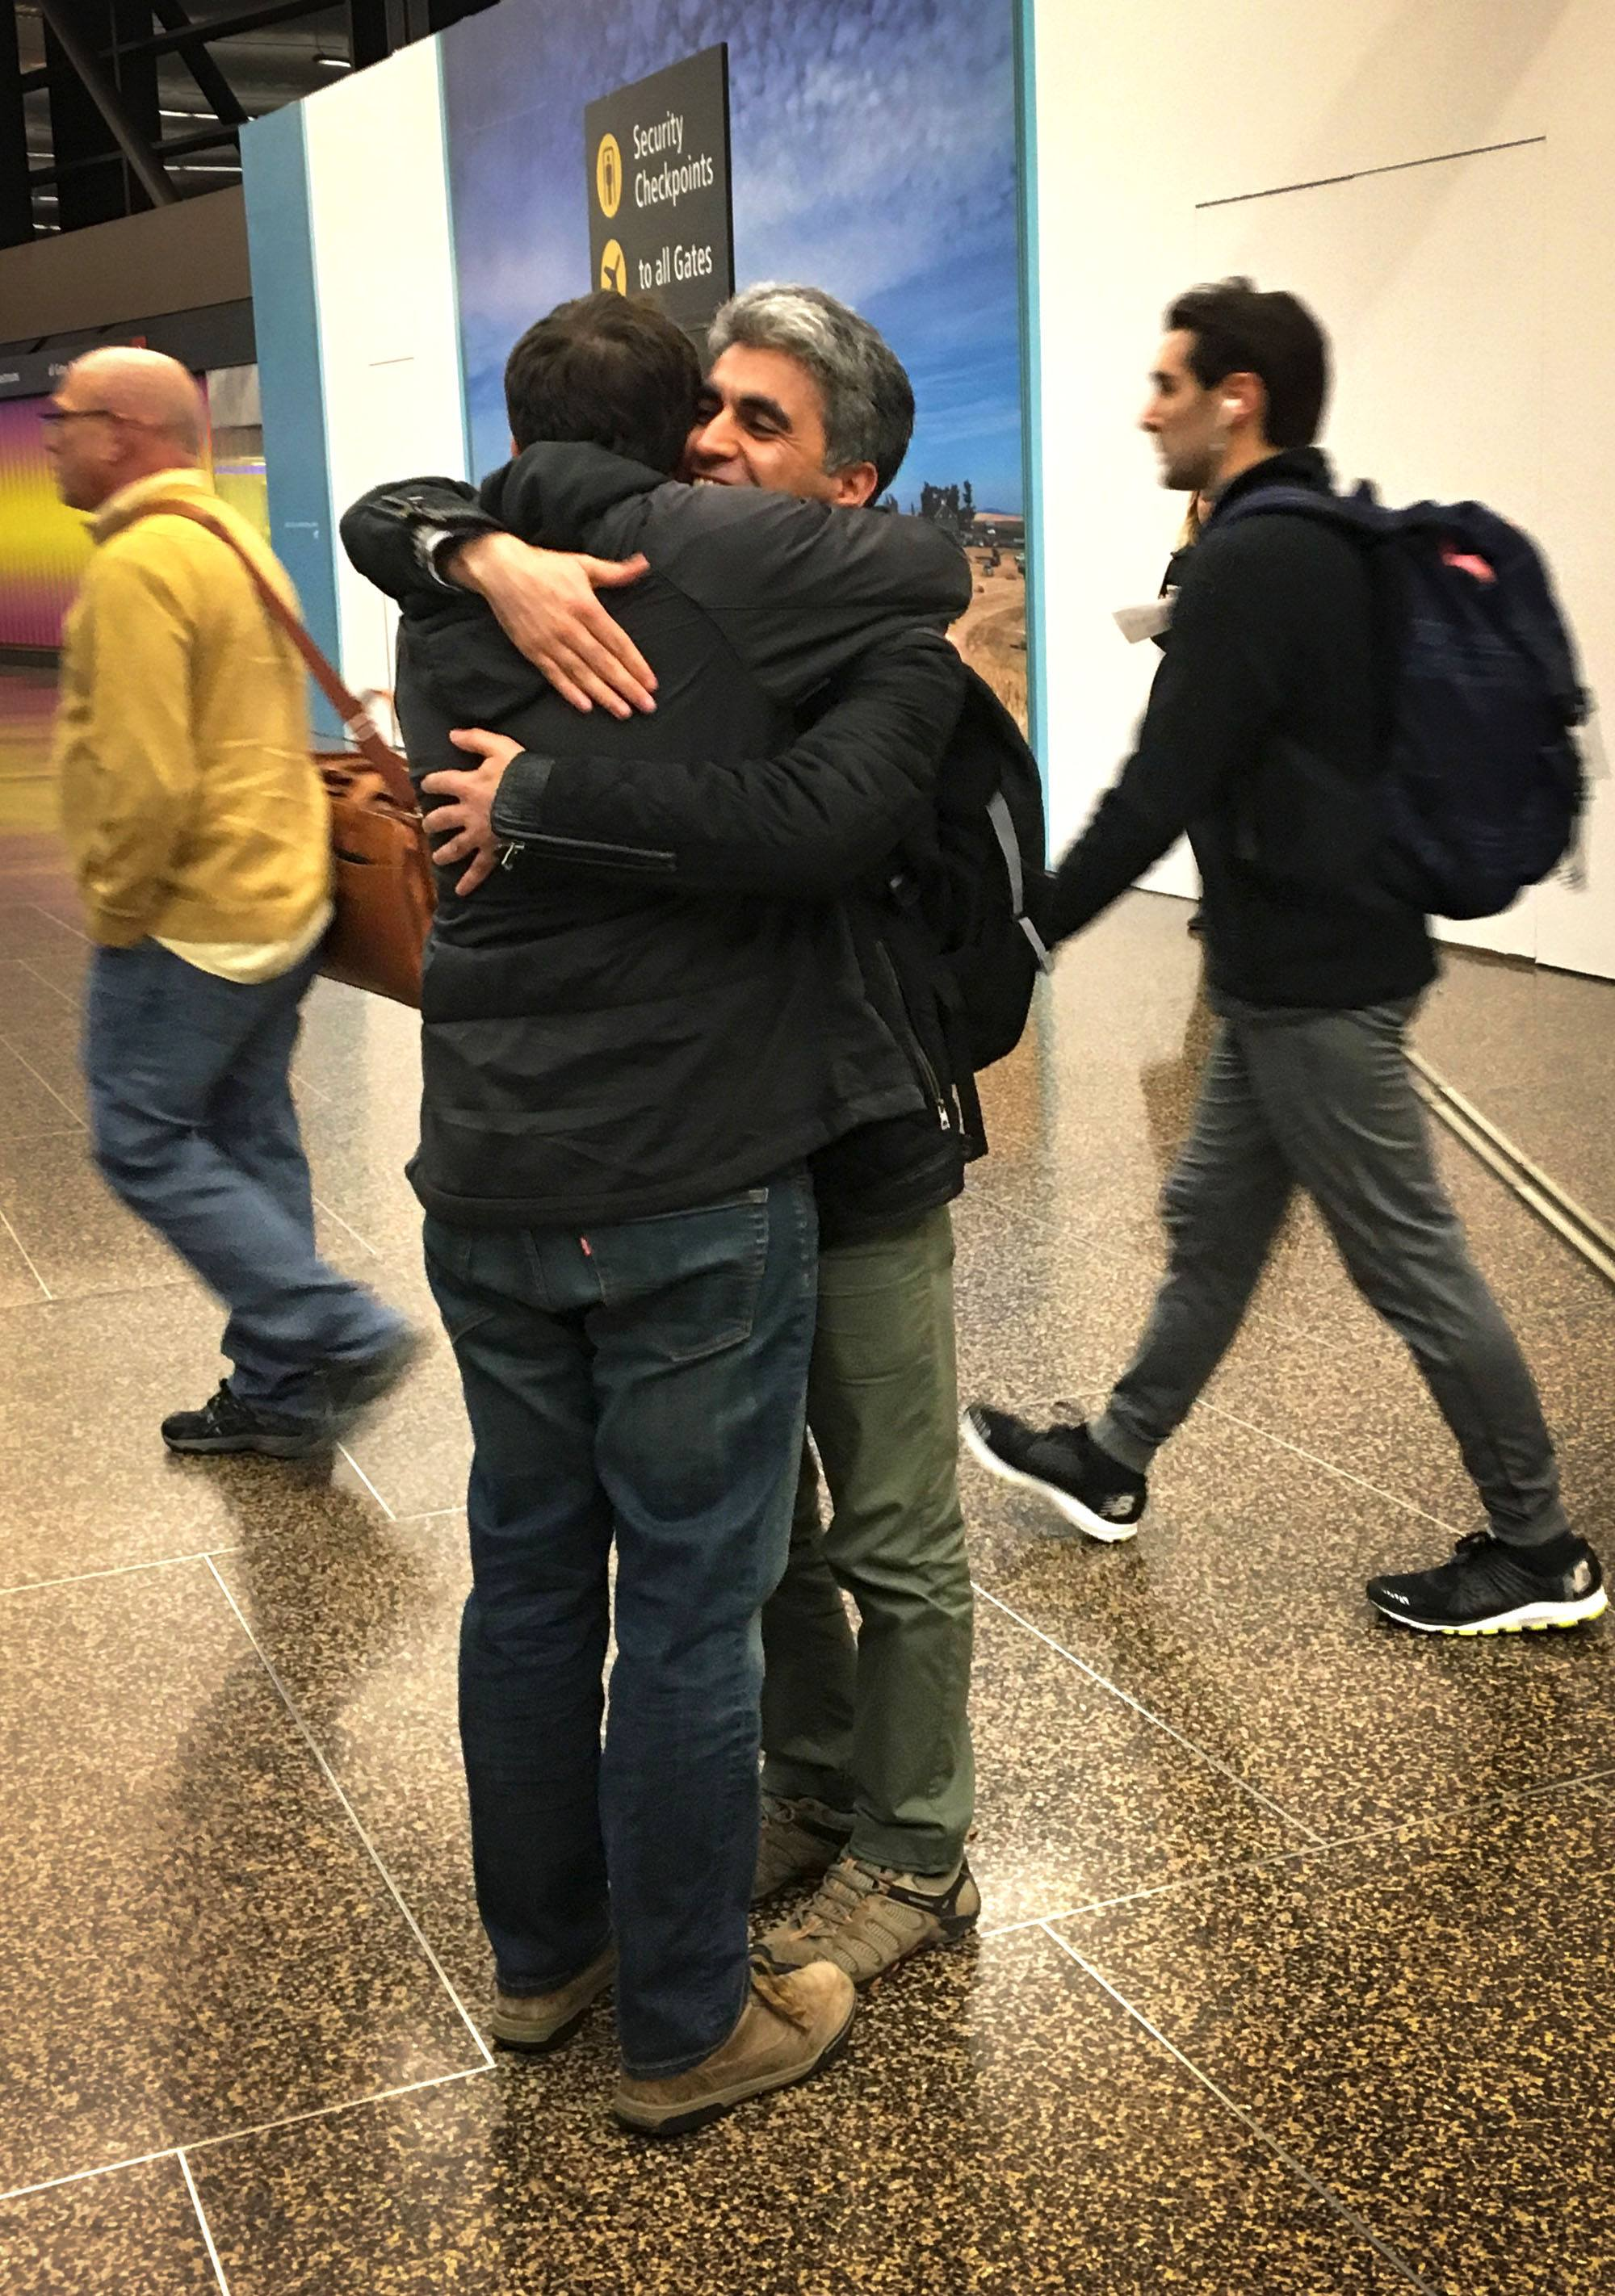 Arash arriving in Seattle on Tuesday night (David Parsons)